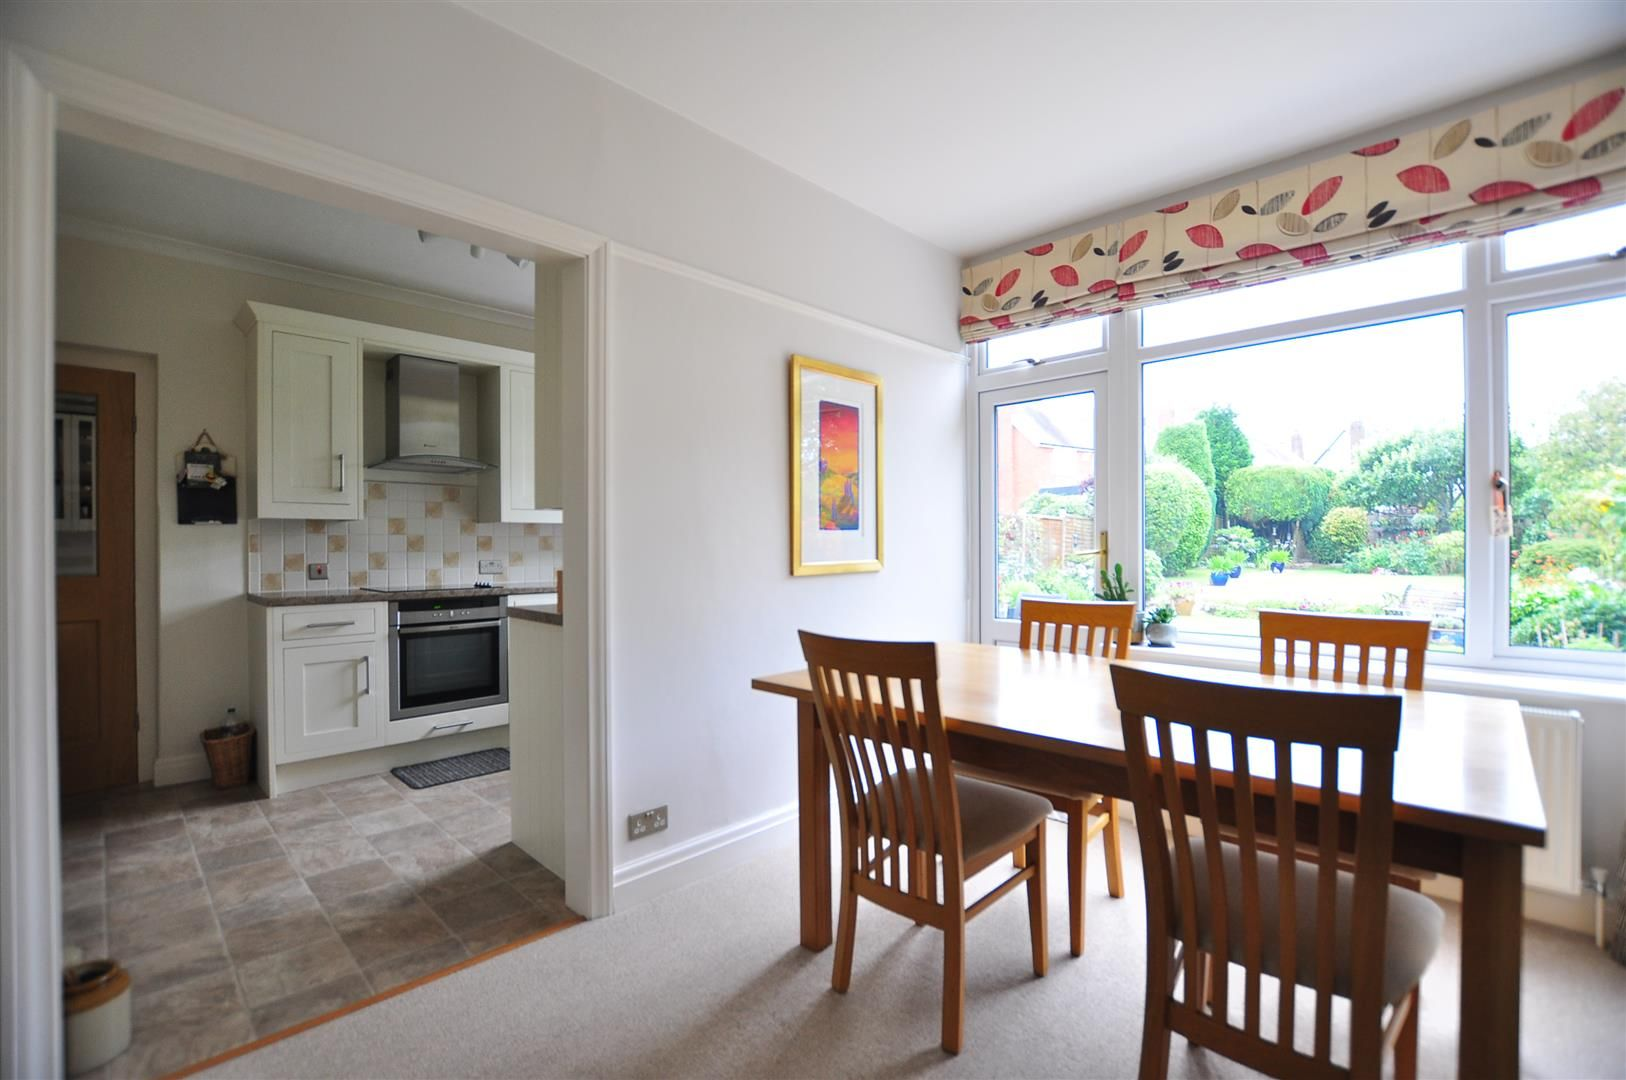 4 bed semi-detached for sale  - Property Image 6